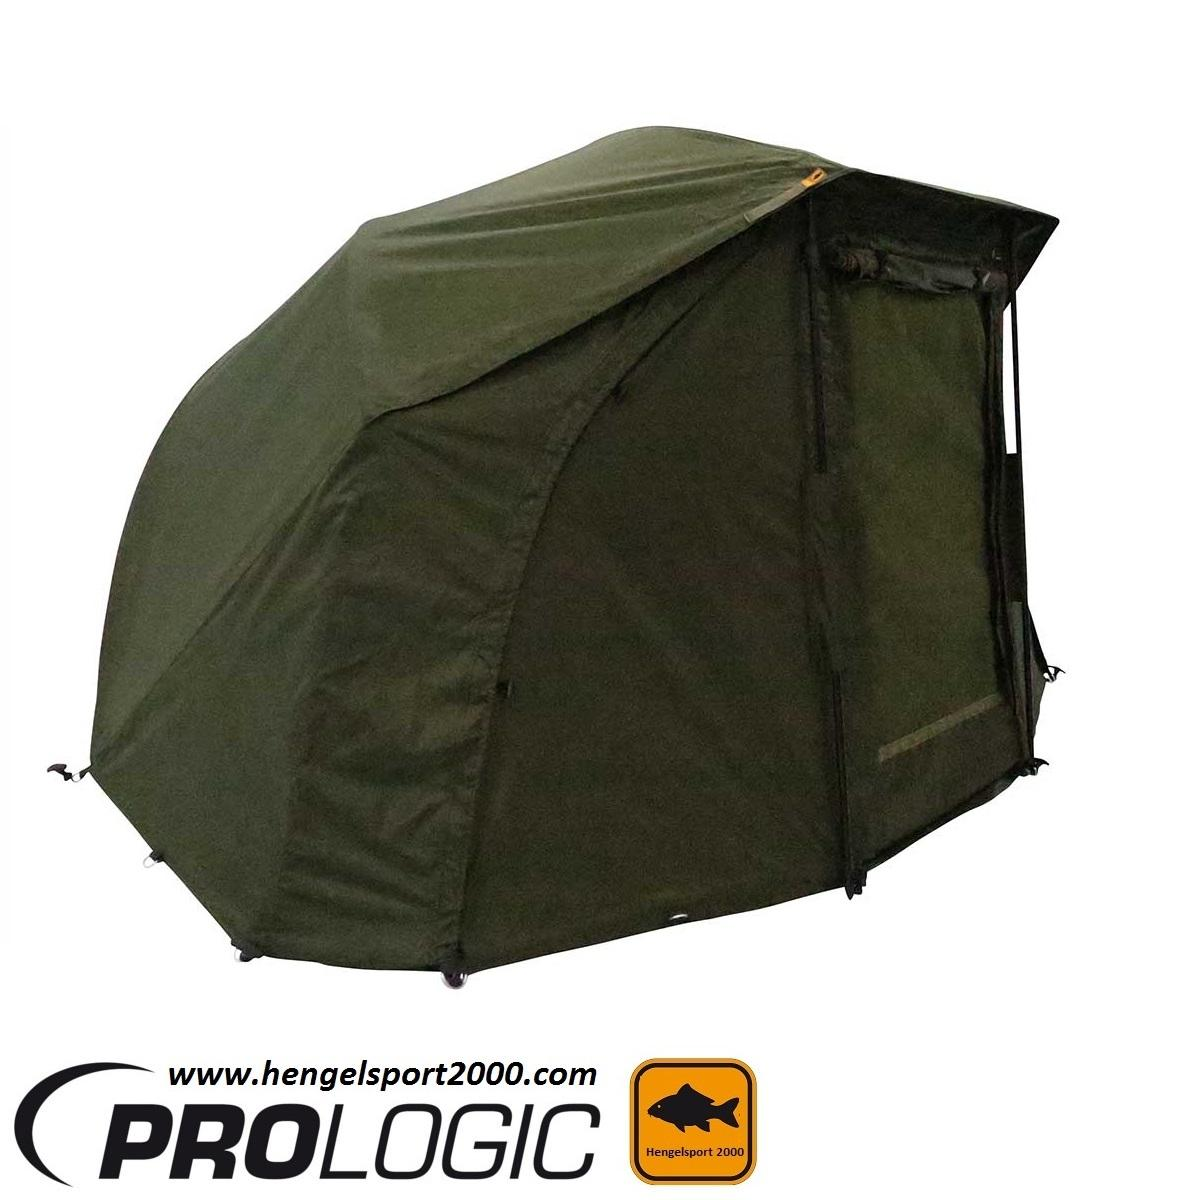 Prologic Cruzade Brolly System 55